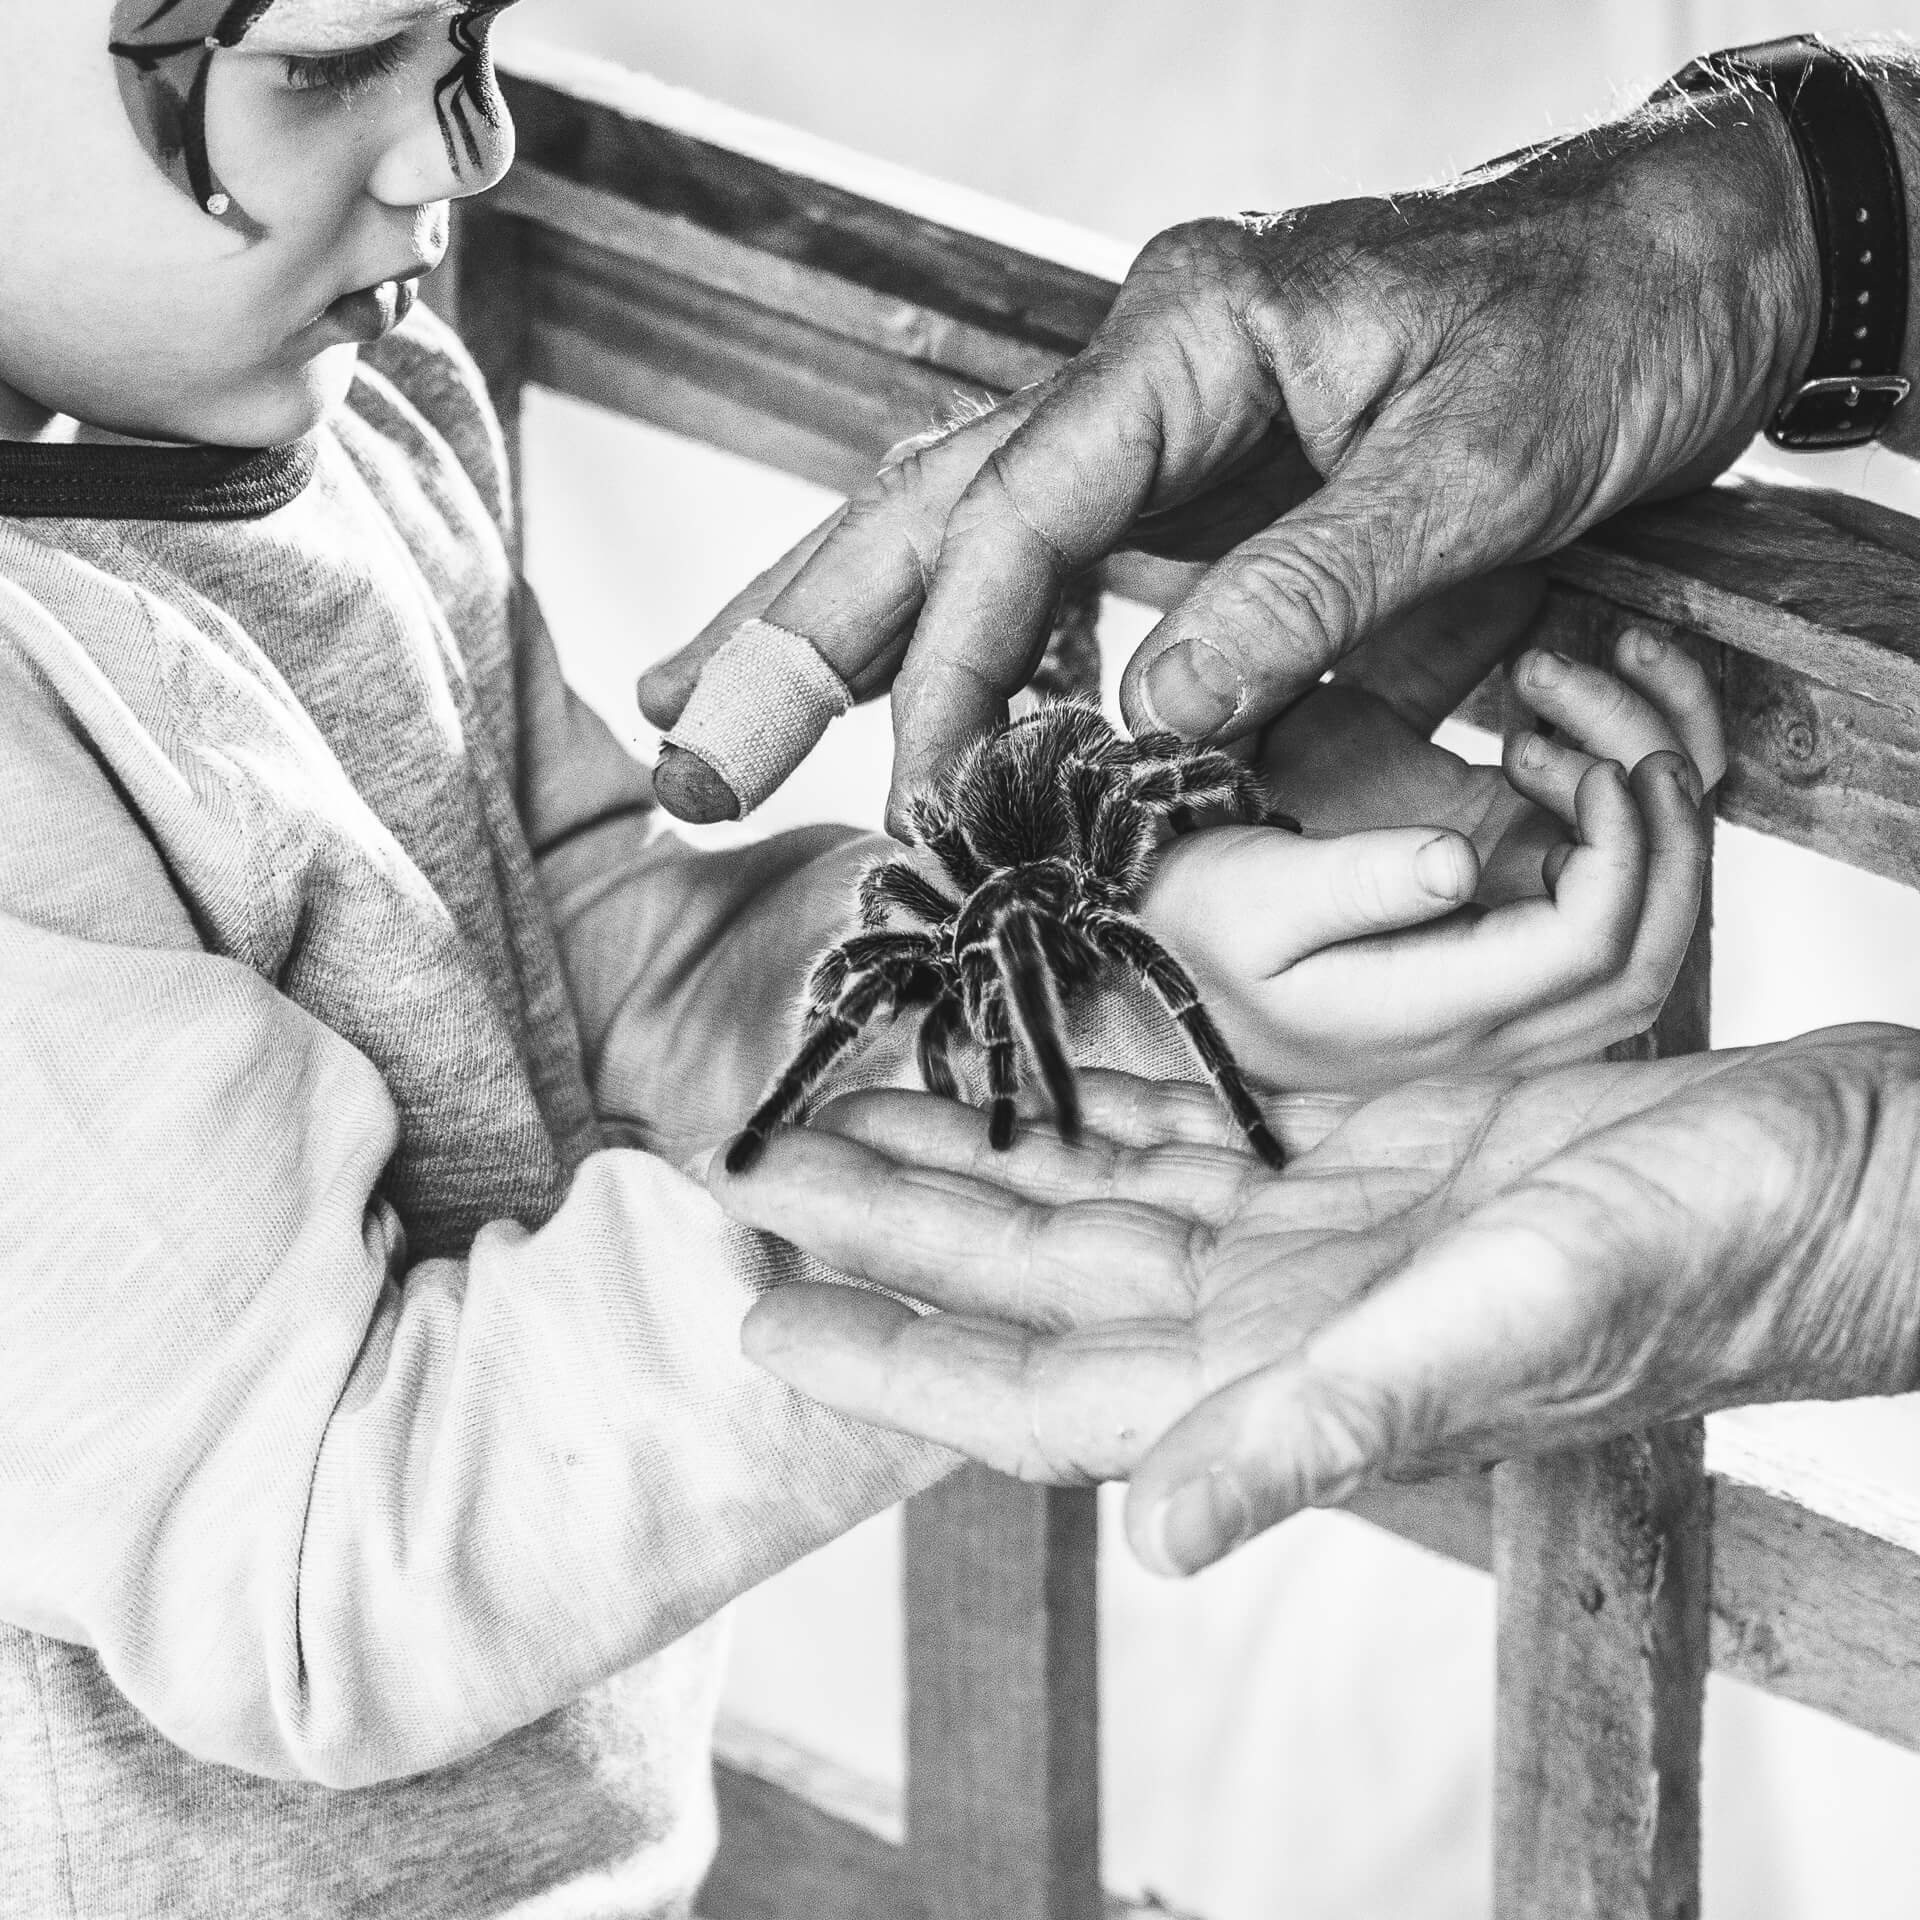 A close up black & white image of a full grown tarantula spider being placed into the outstretched and cupped hands of a young boy as he stares intently at the creature.